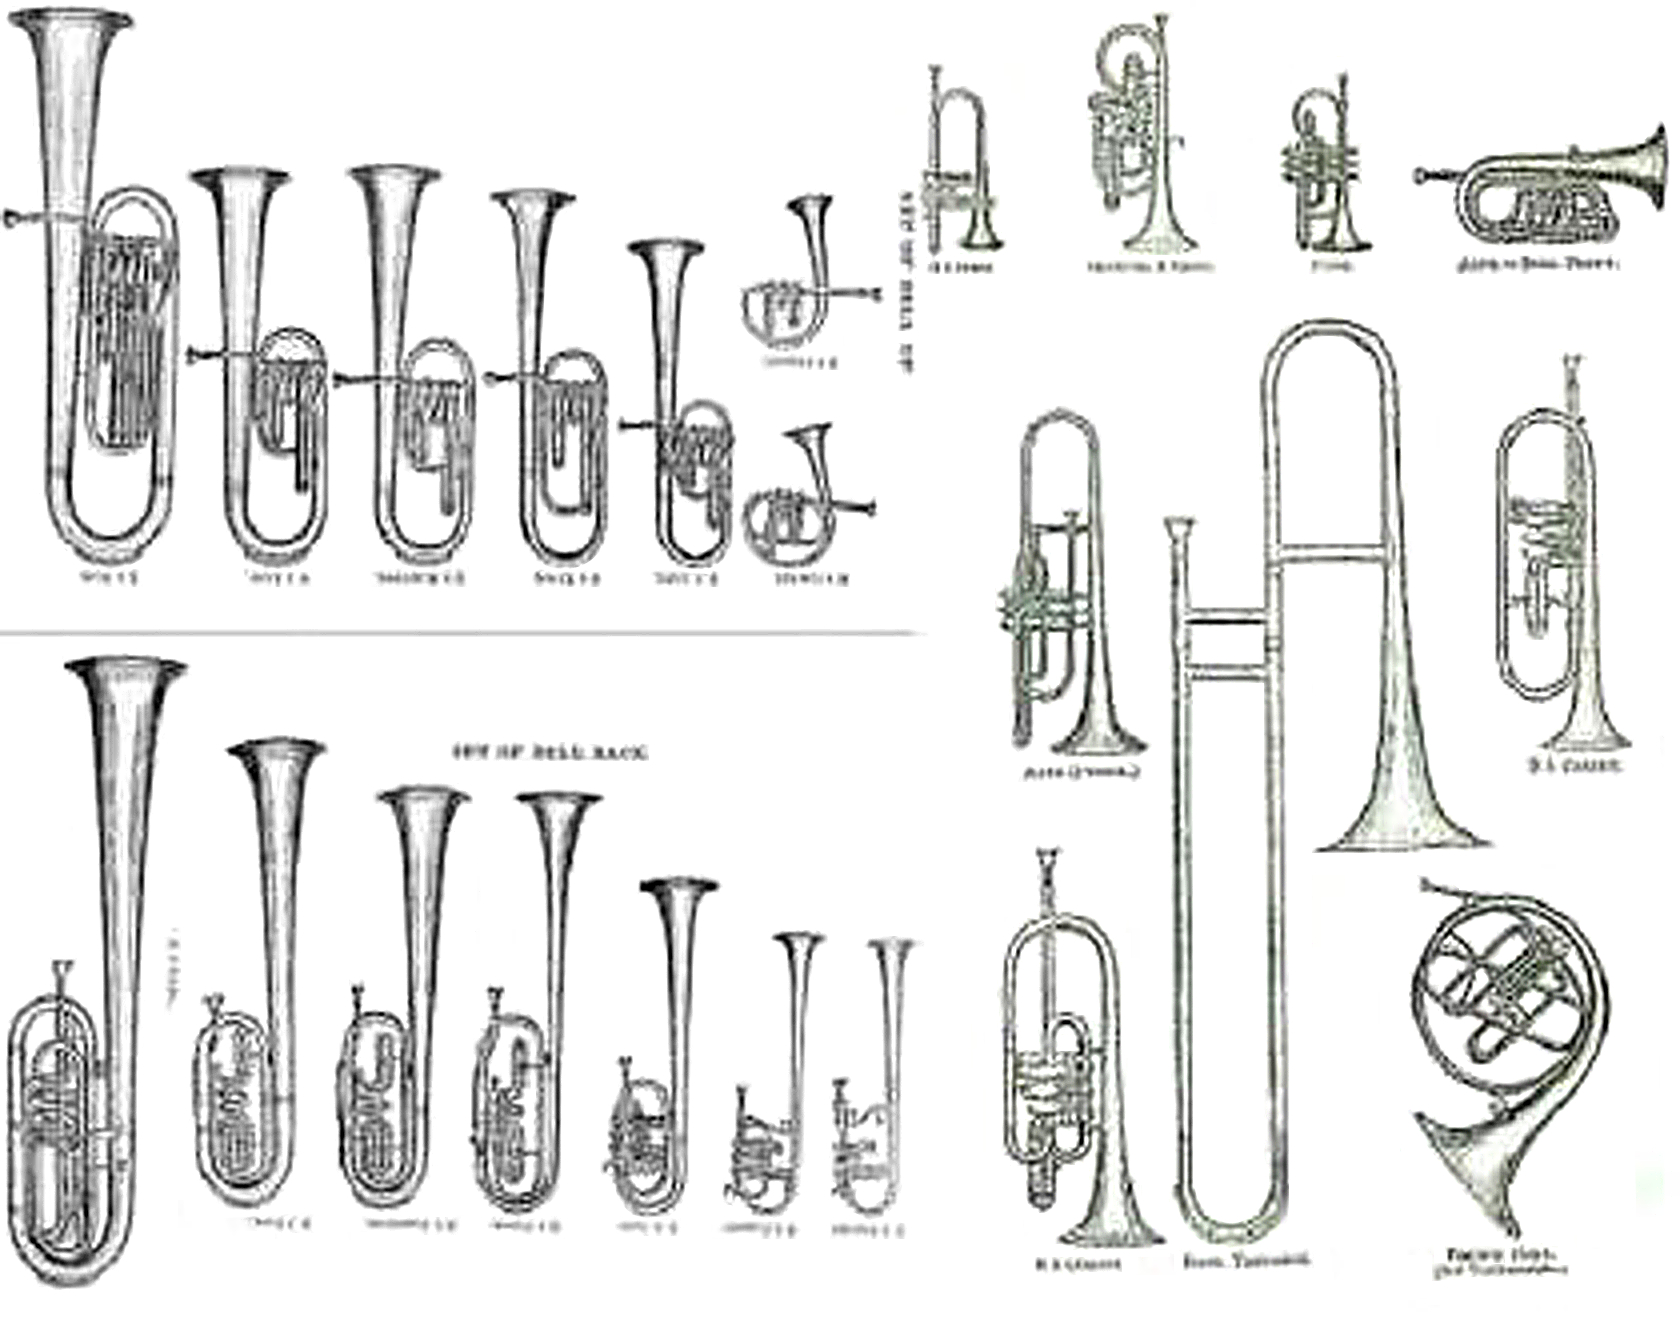 file:boston 1869 catalogue images (x4 zoomed) - wikimedia commons